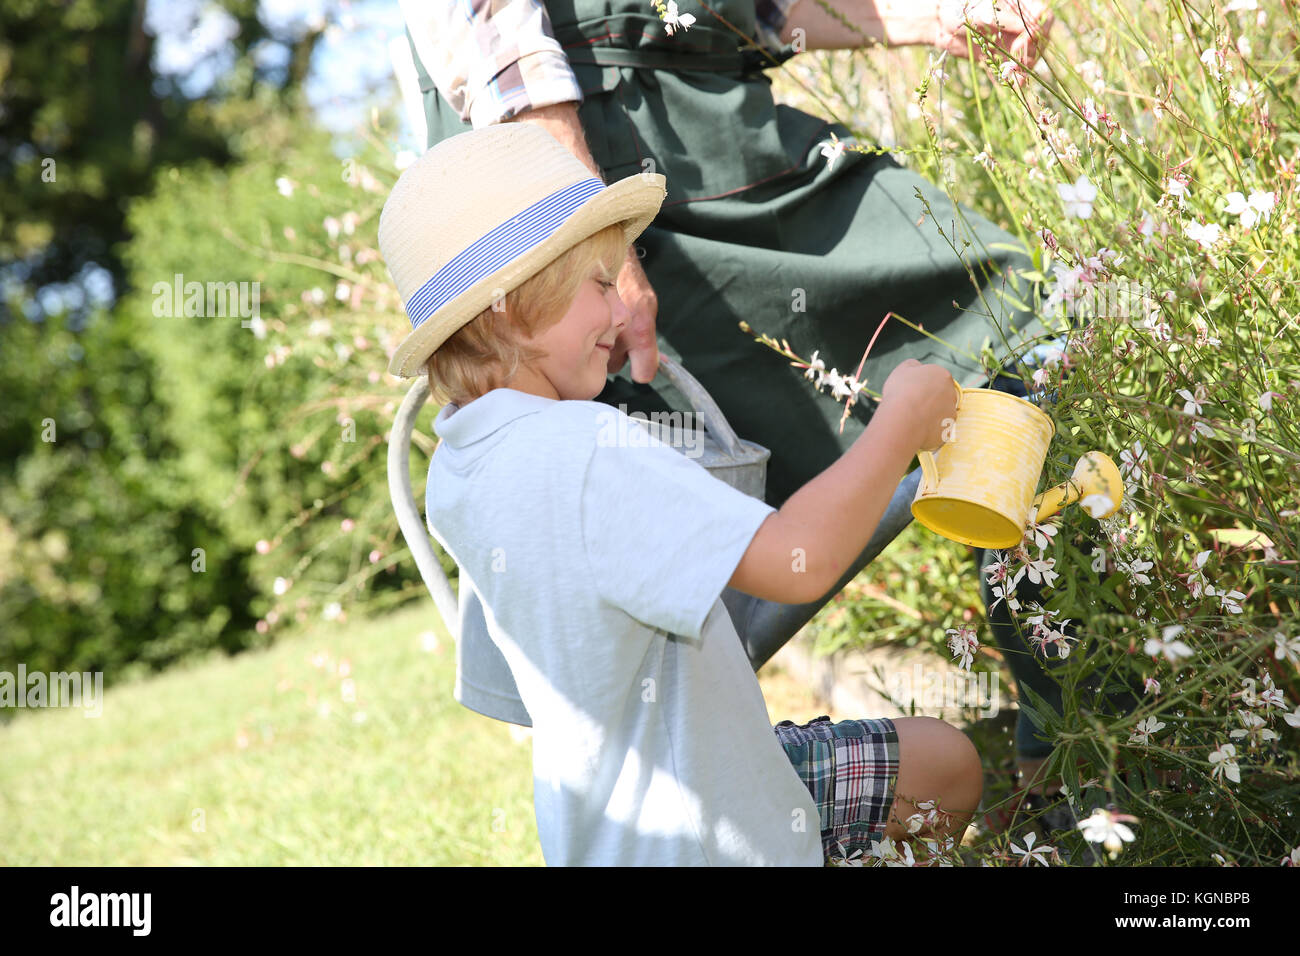 Closeup of cute little boy watering flowers in garden - Stock Image